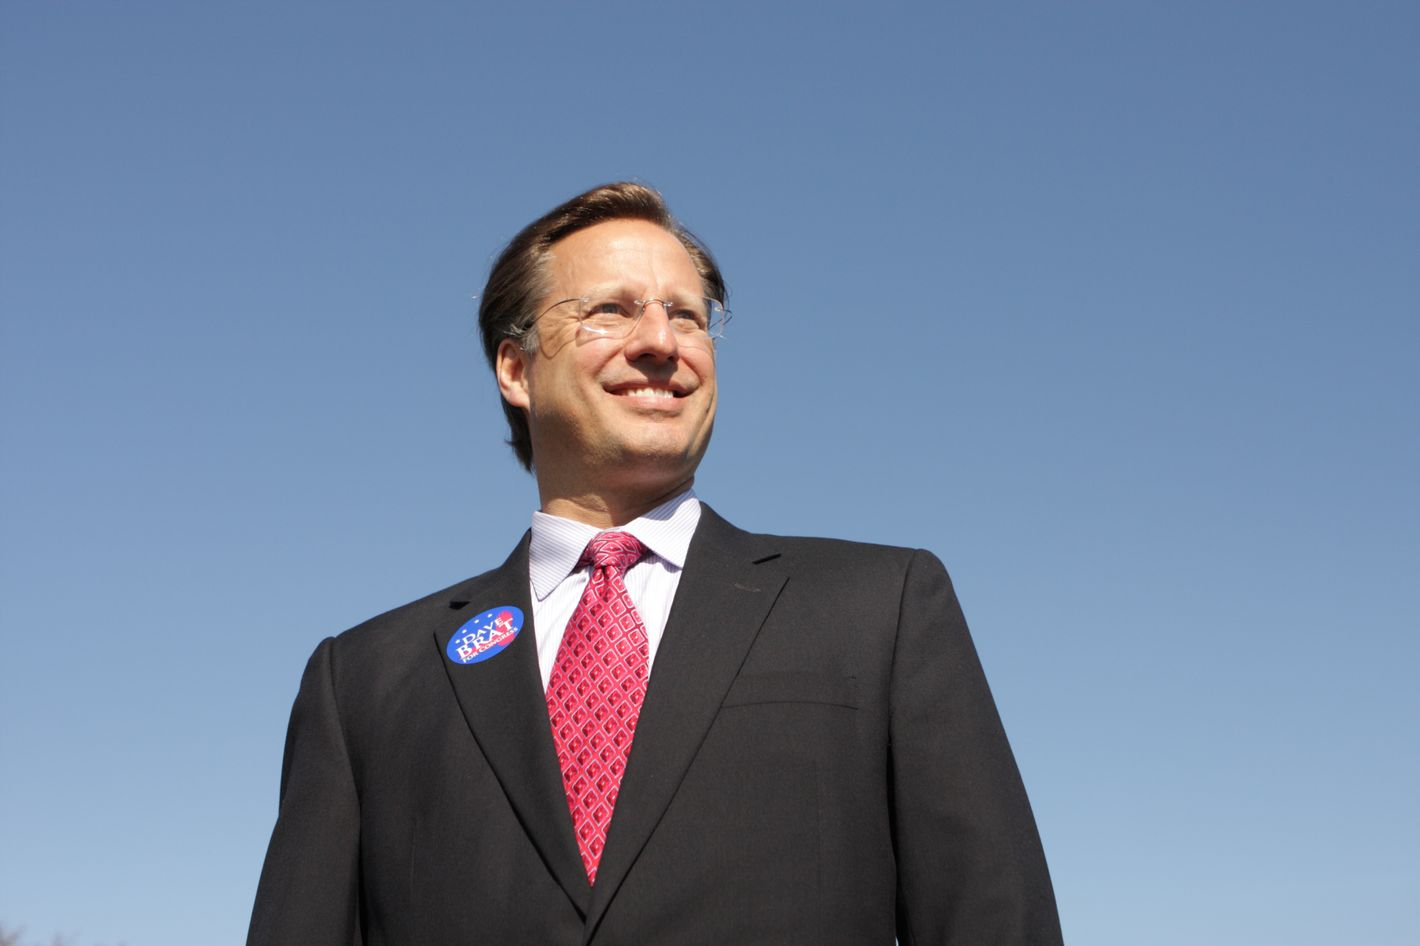 GLEN ALLEN, VA - APRIL 26:  College economics professor and Republican candidate for Congress David Brat (C) poses for a photograph after attending the Henrico County Republican Party breakfast meeting April 26, 2014 in Glen Allen, Virginia. Brat went on to a surprise defeat of incumbent House Majority Leader Eric Cantor in the June 10 primary.  (Photo by Jay Paul/Getty Images)